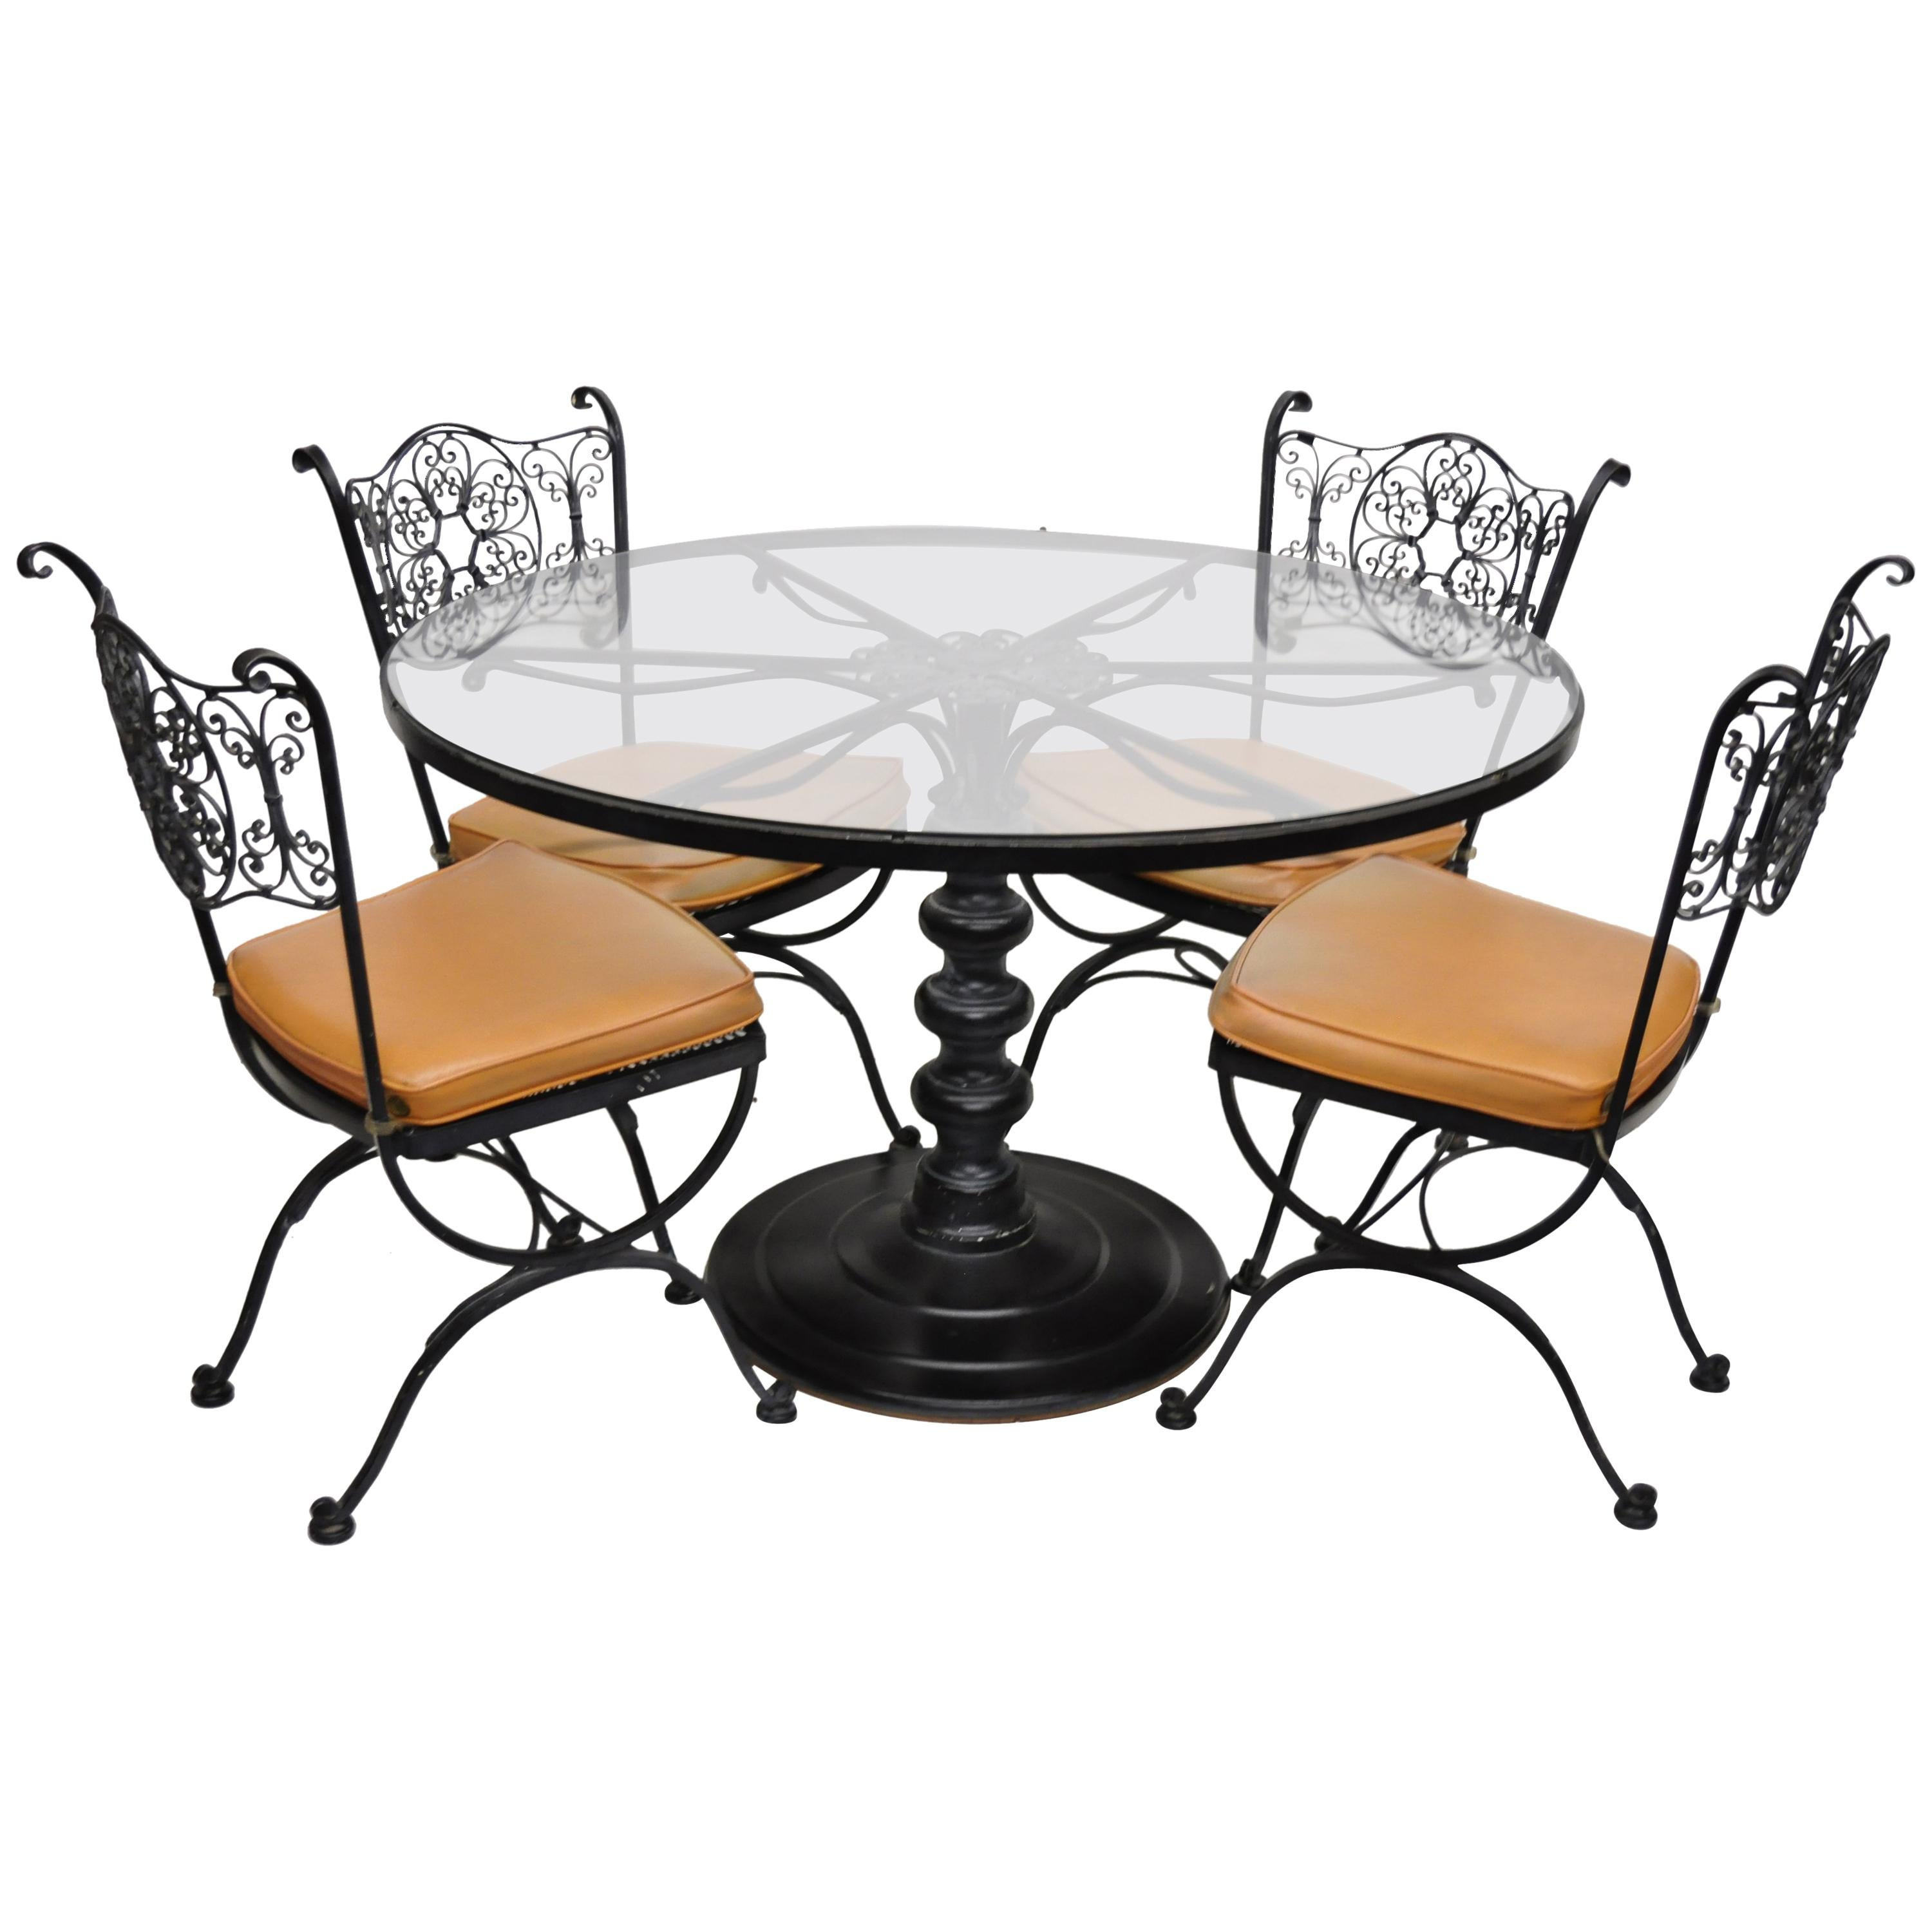 Round Table Patio Dining Sets.Woodard Andalusian Wrought Iron Patio Dining Set Round Table 4 Chairs